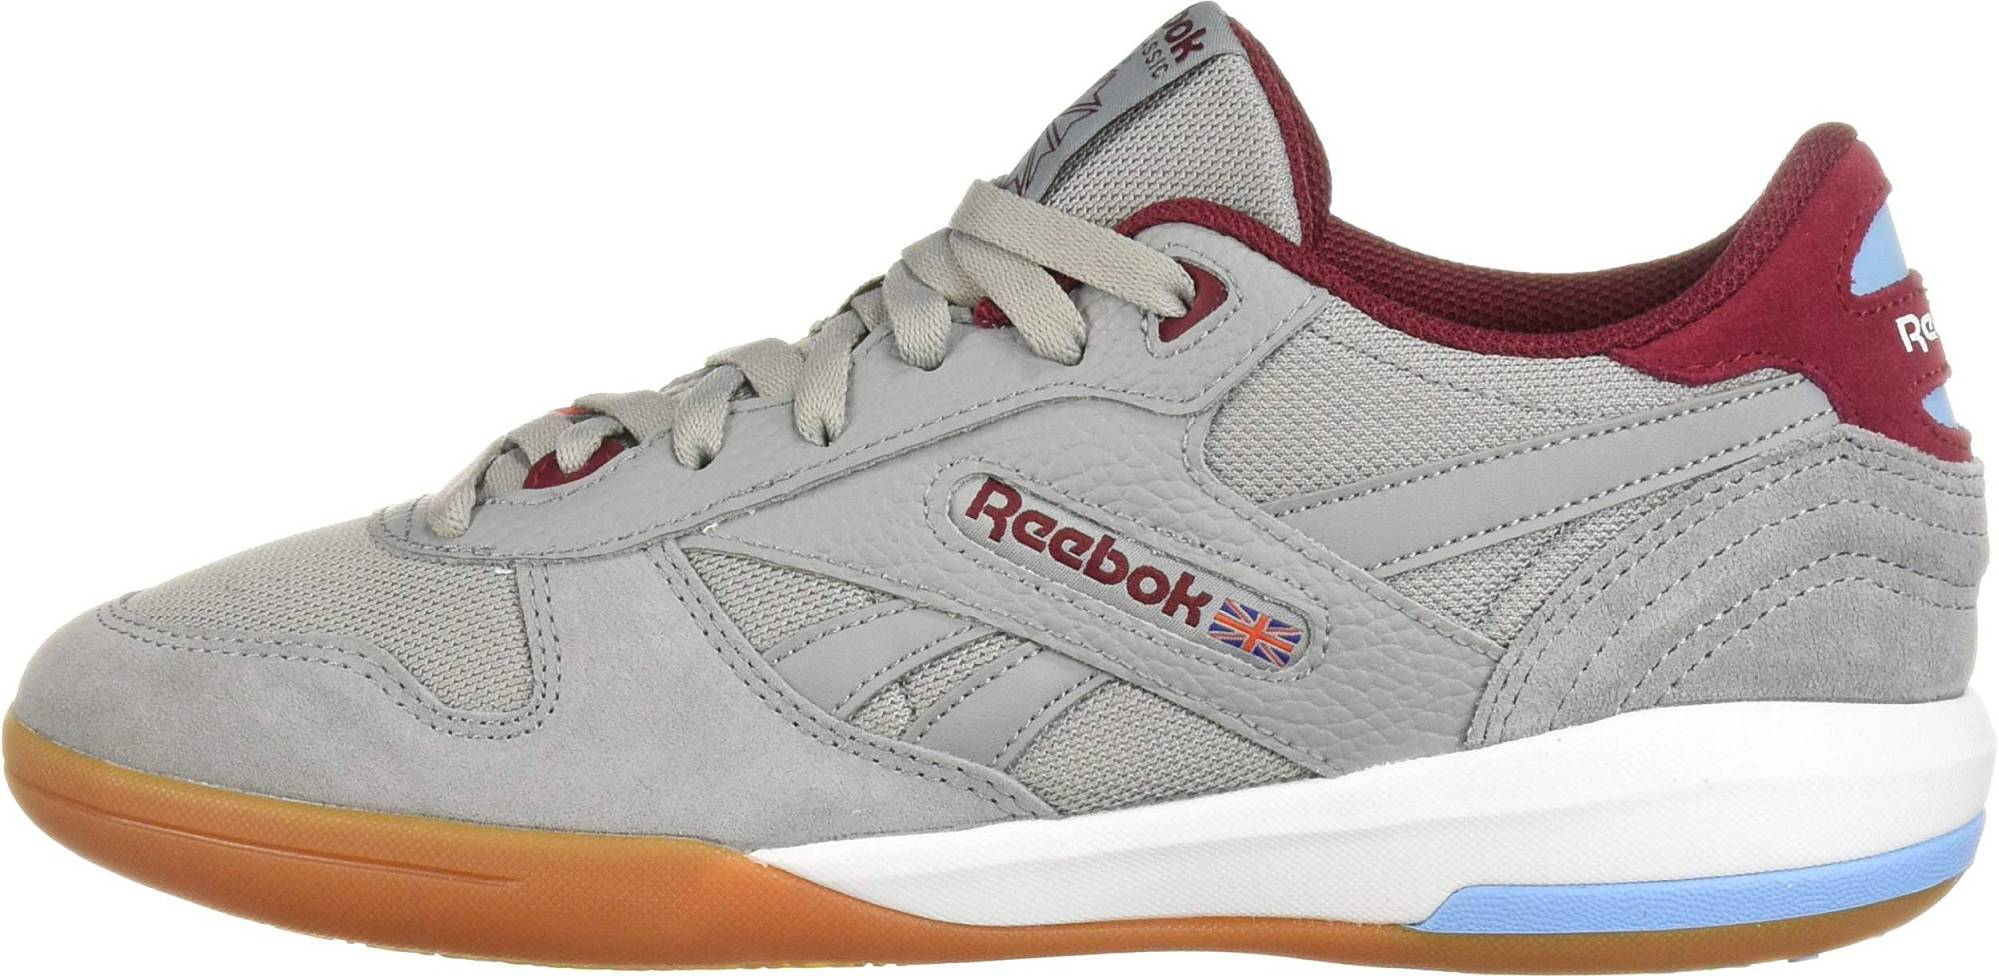 Reebok Unphased Pro – Shoes Reviews